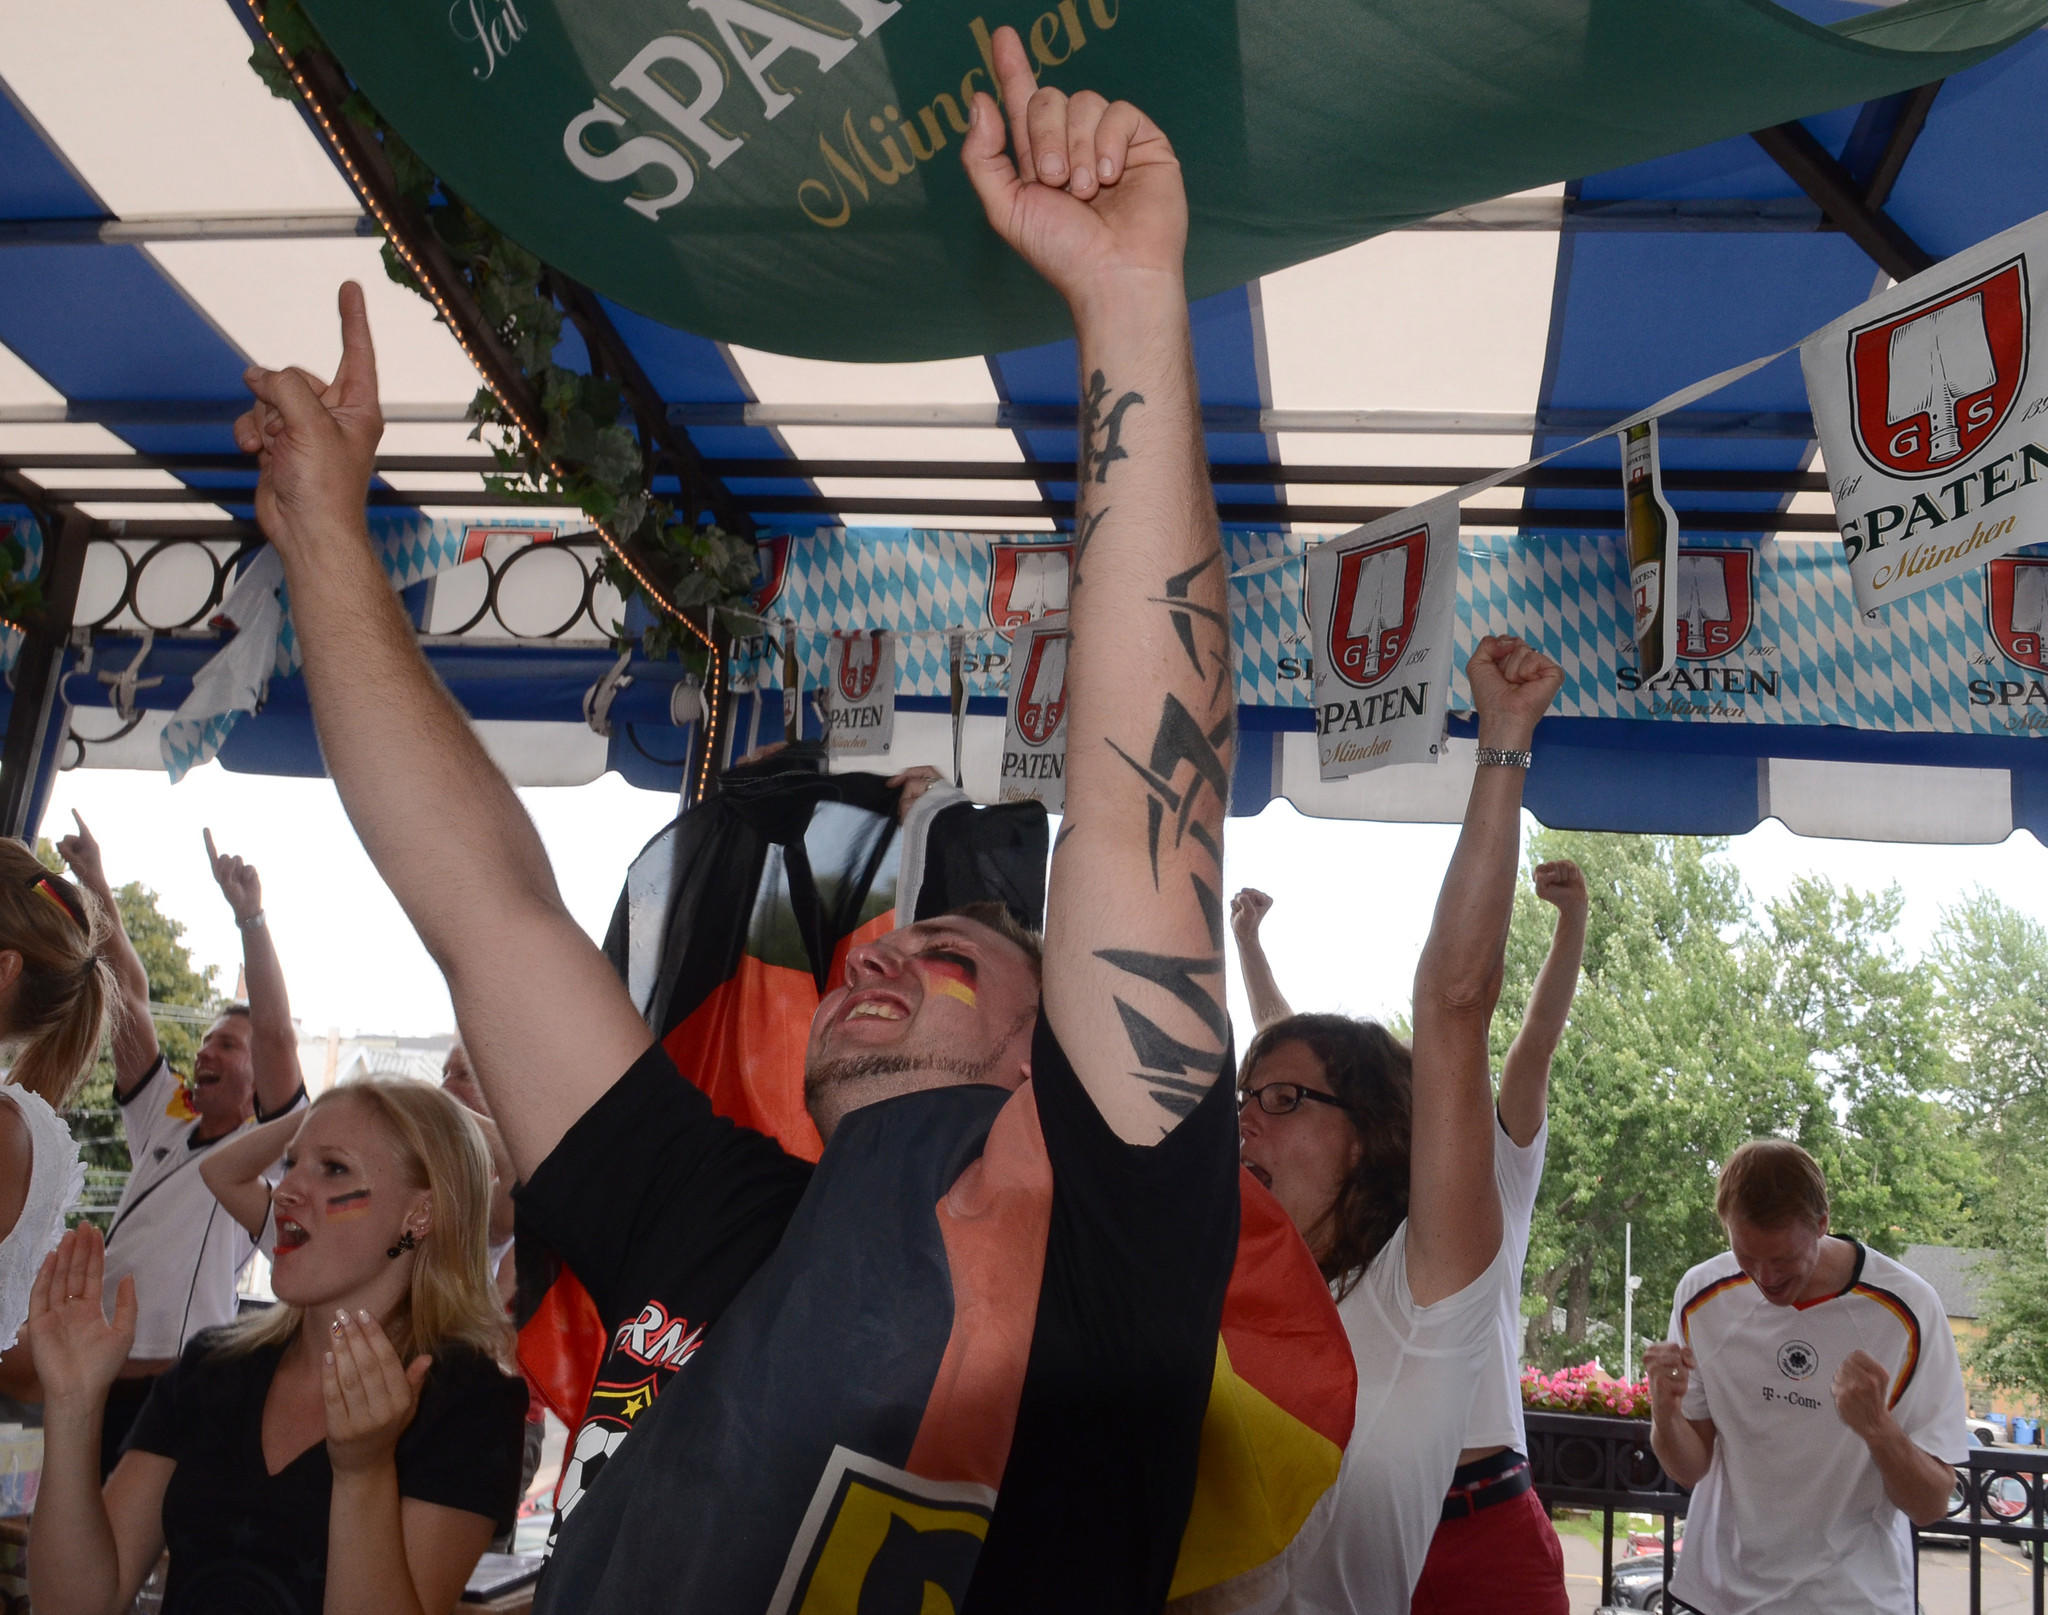 Steve Koegler of New Britain celebrates at the German Restaurant in New Britain after Germany scored a goal in extra time in the World Cup final in Brazil Sunday afternoon. Germany beat Argentina 1-0 in Rio de Janeiro to win the tournament.